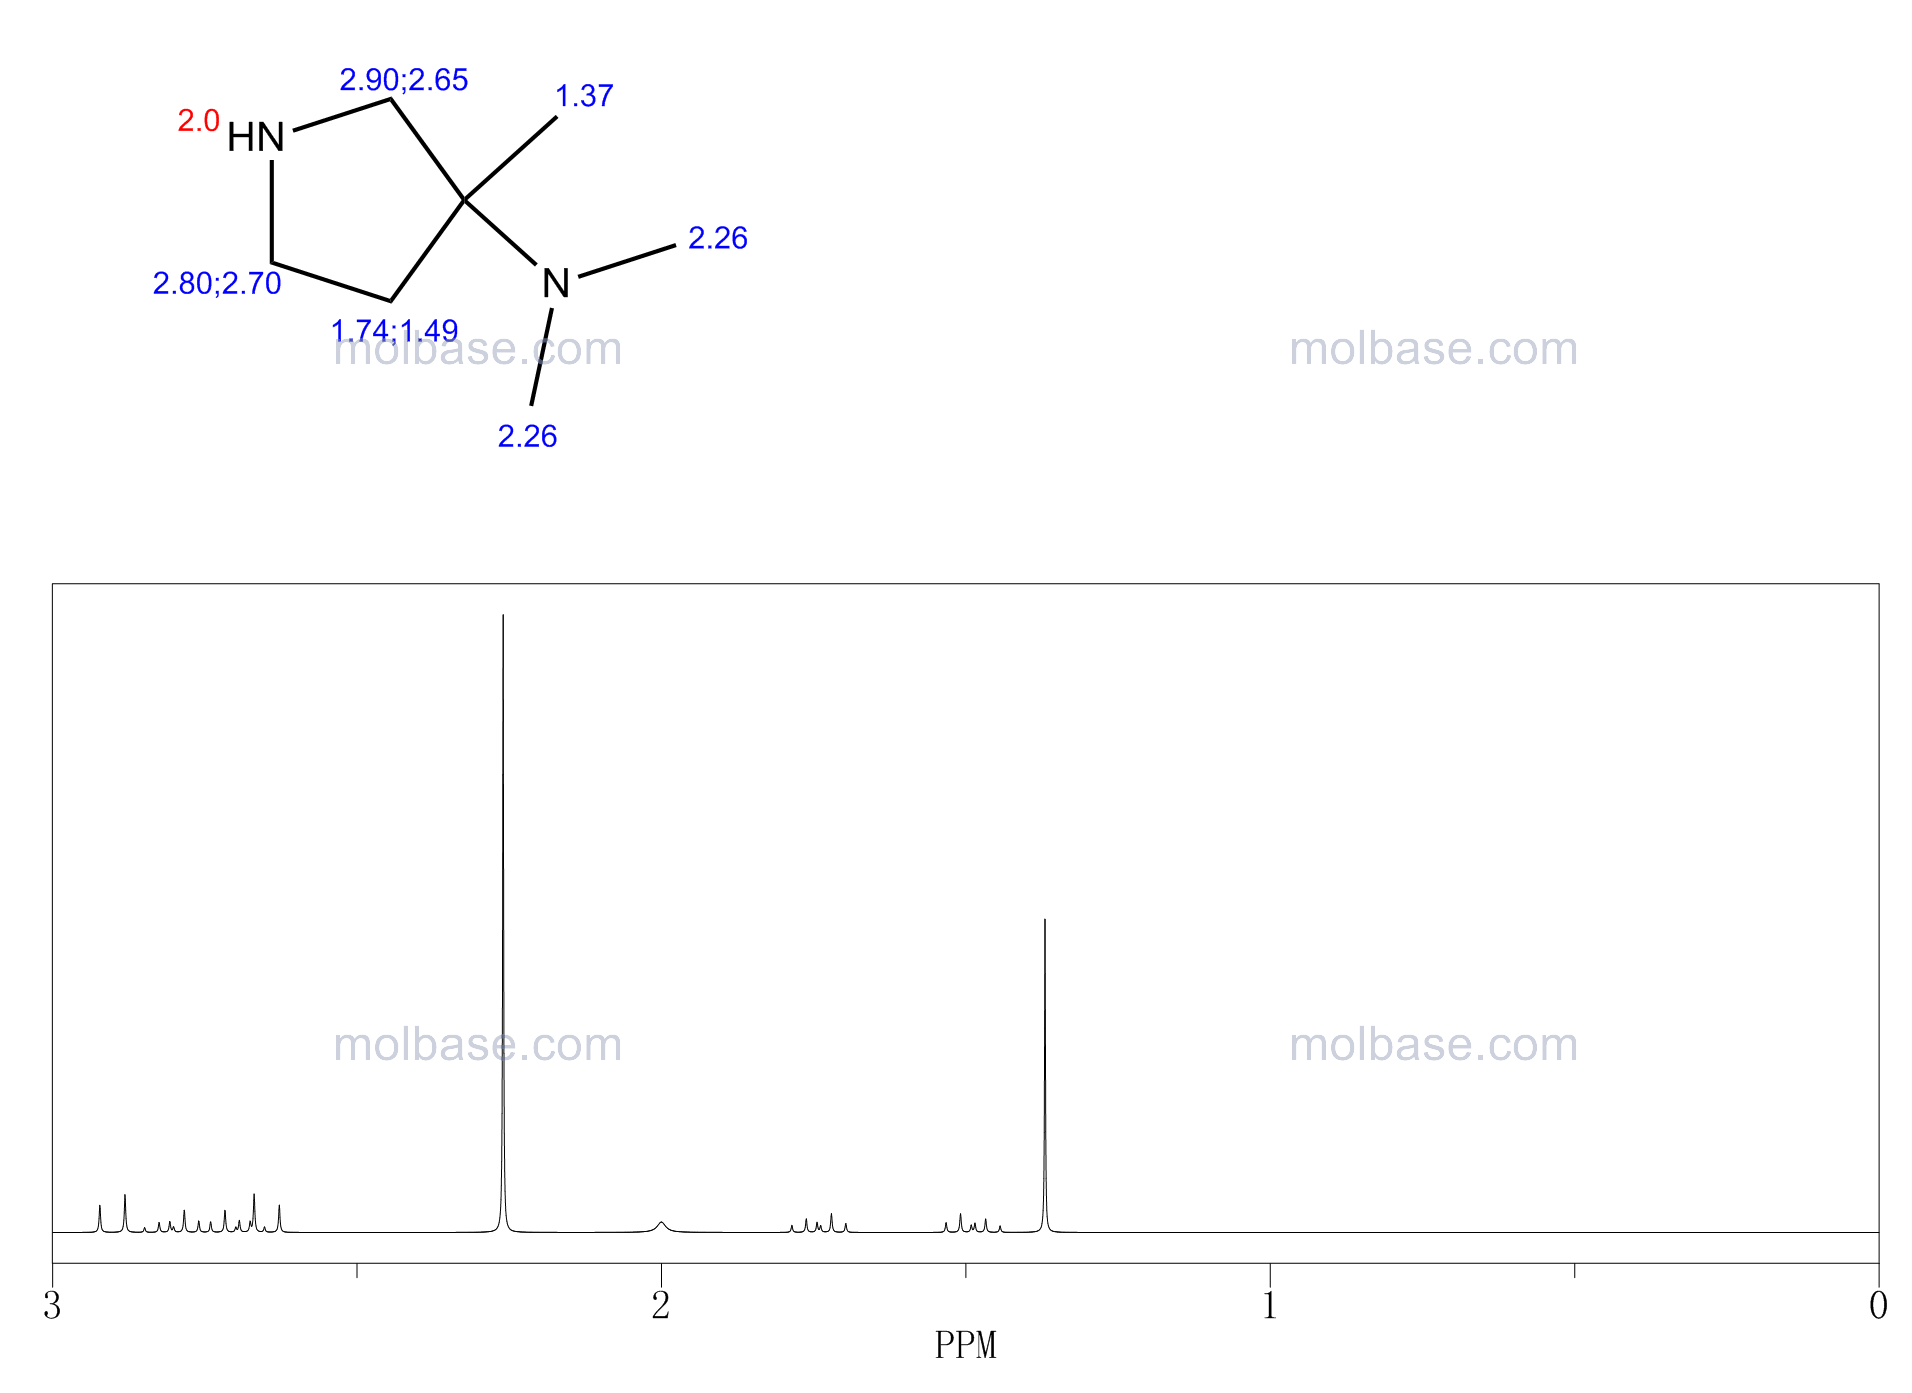 N,N,3-TRIMETHYLPYRROLIDIN-3-AMINE NMR spectra analysis, Chemical CAS NO. 947149-88-4 NMR spectral analysis, N,N,3-TRIMETHYLPYRROLIDIN-3-AMINE C-NMR spectrum